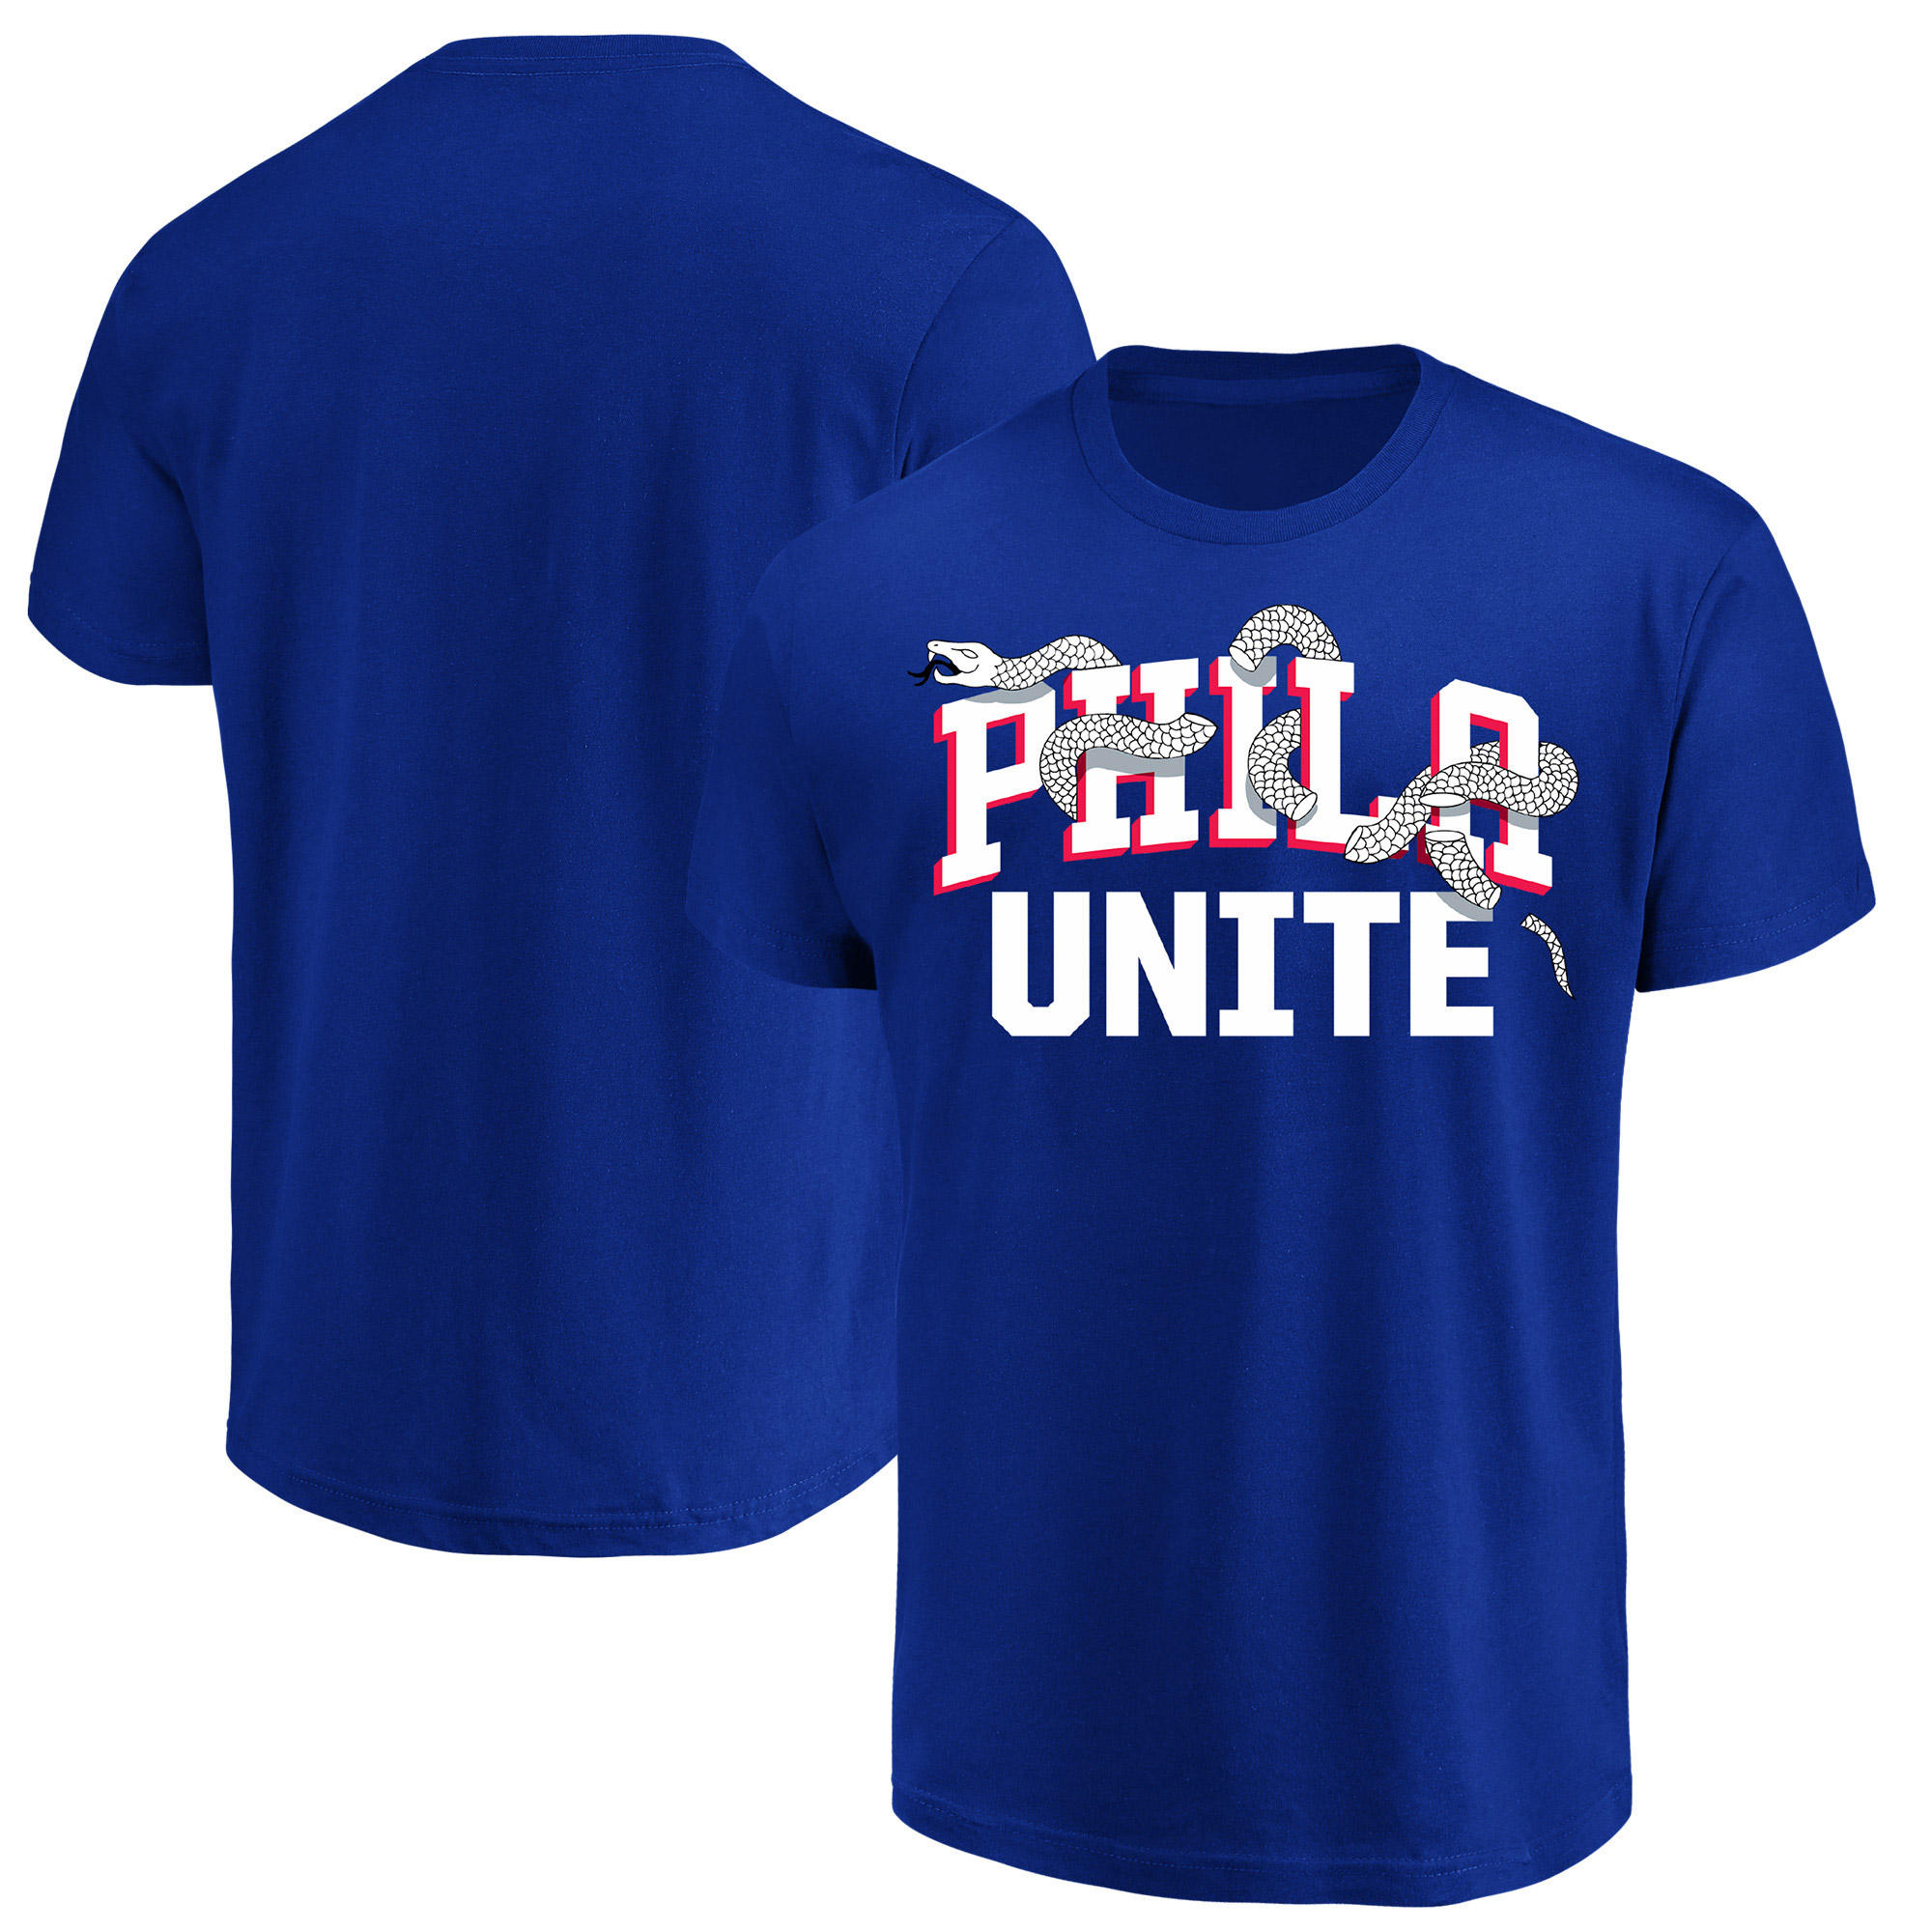 Philadelphia 76ers Majestic 2018 NBA Playoffs Phila Unite Wordmark T-Shirt - Royal